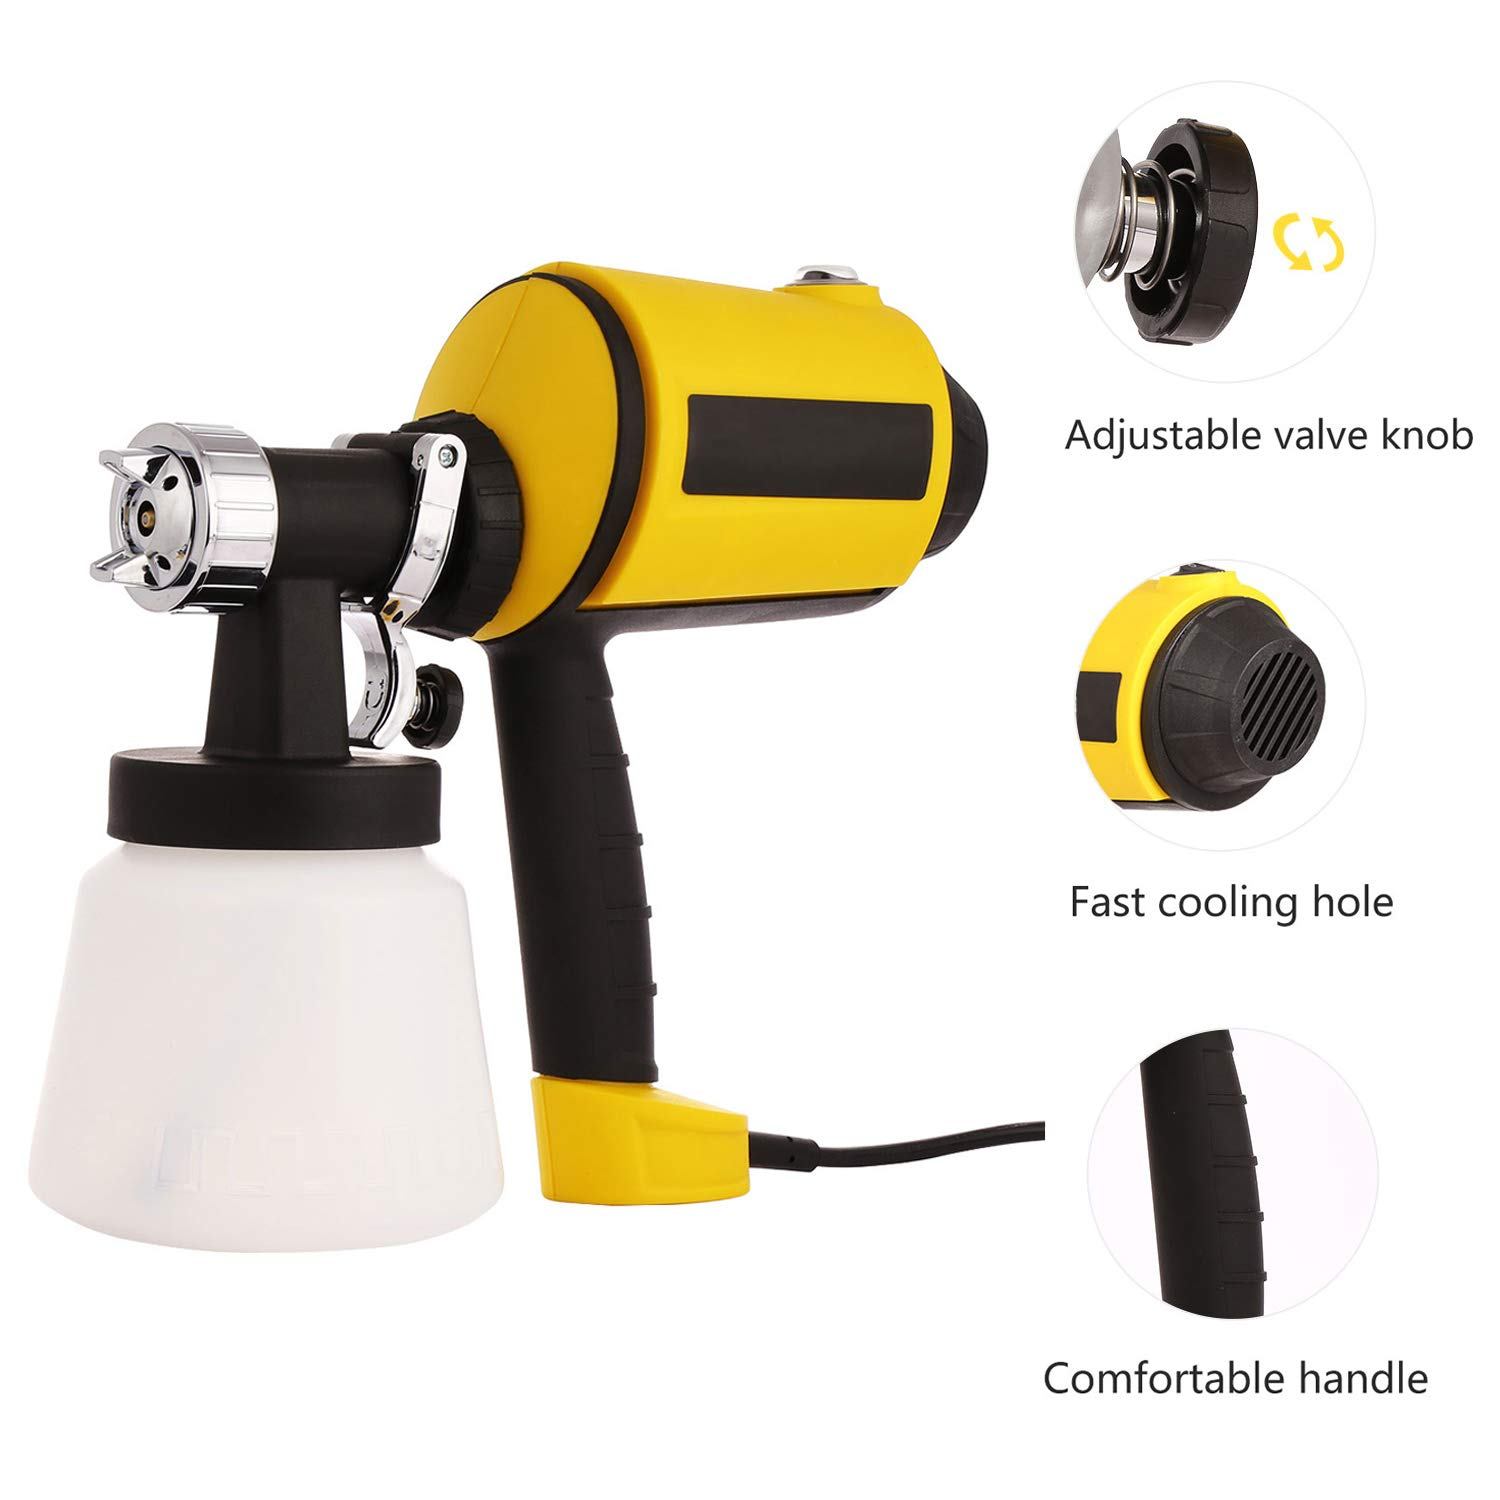 Electric HVLP Paint Spray Gun with Three Spray Patterns, Three Nozzle Sizes, Adjustable Valve Knob - 800ml Detachable Container and 2m Power Line (US Stock)